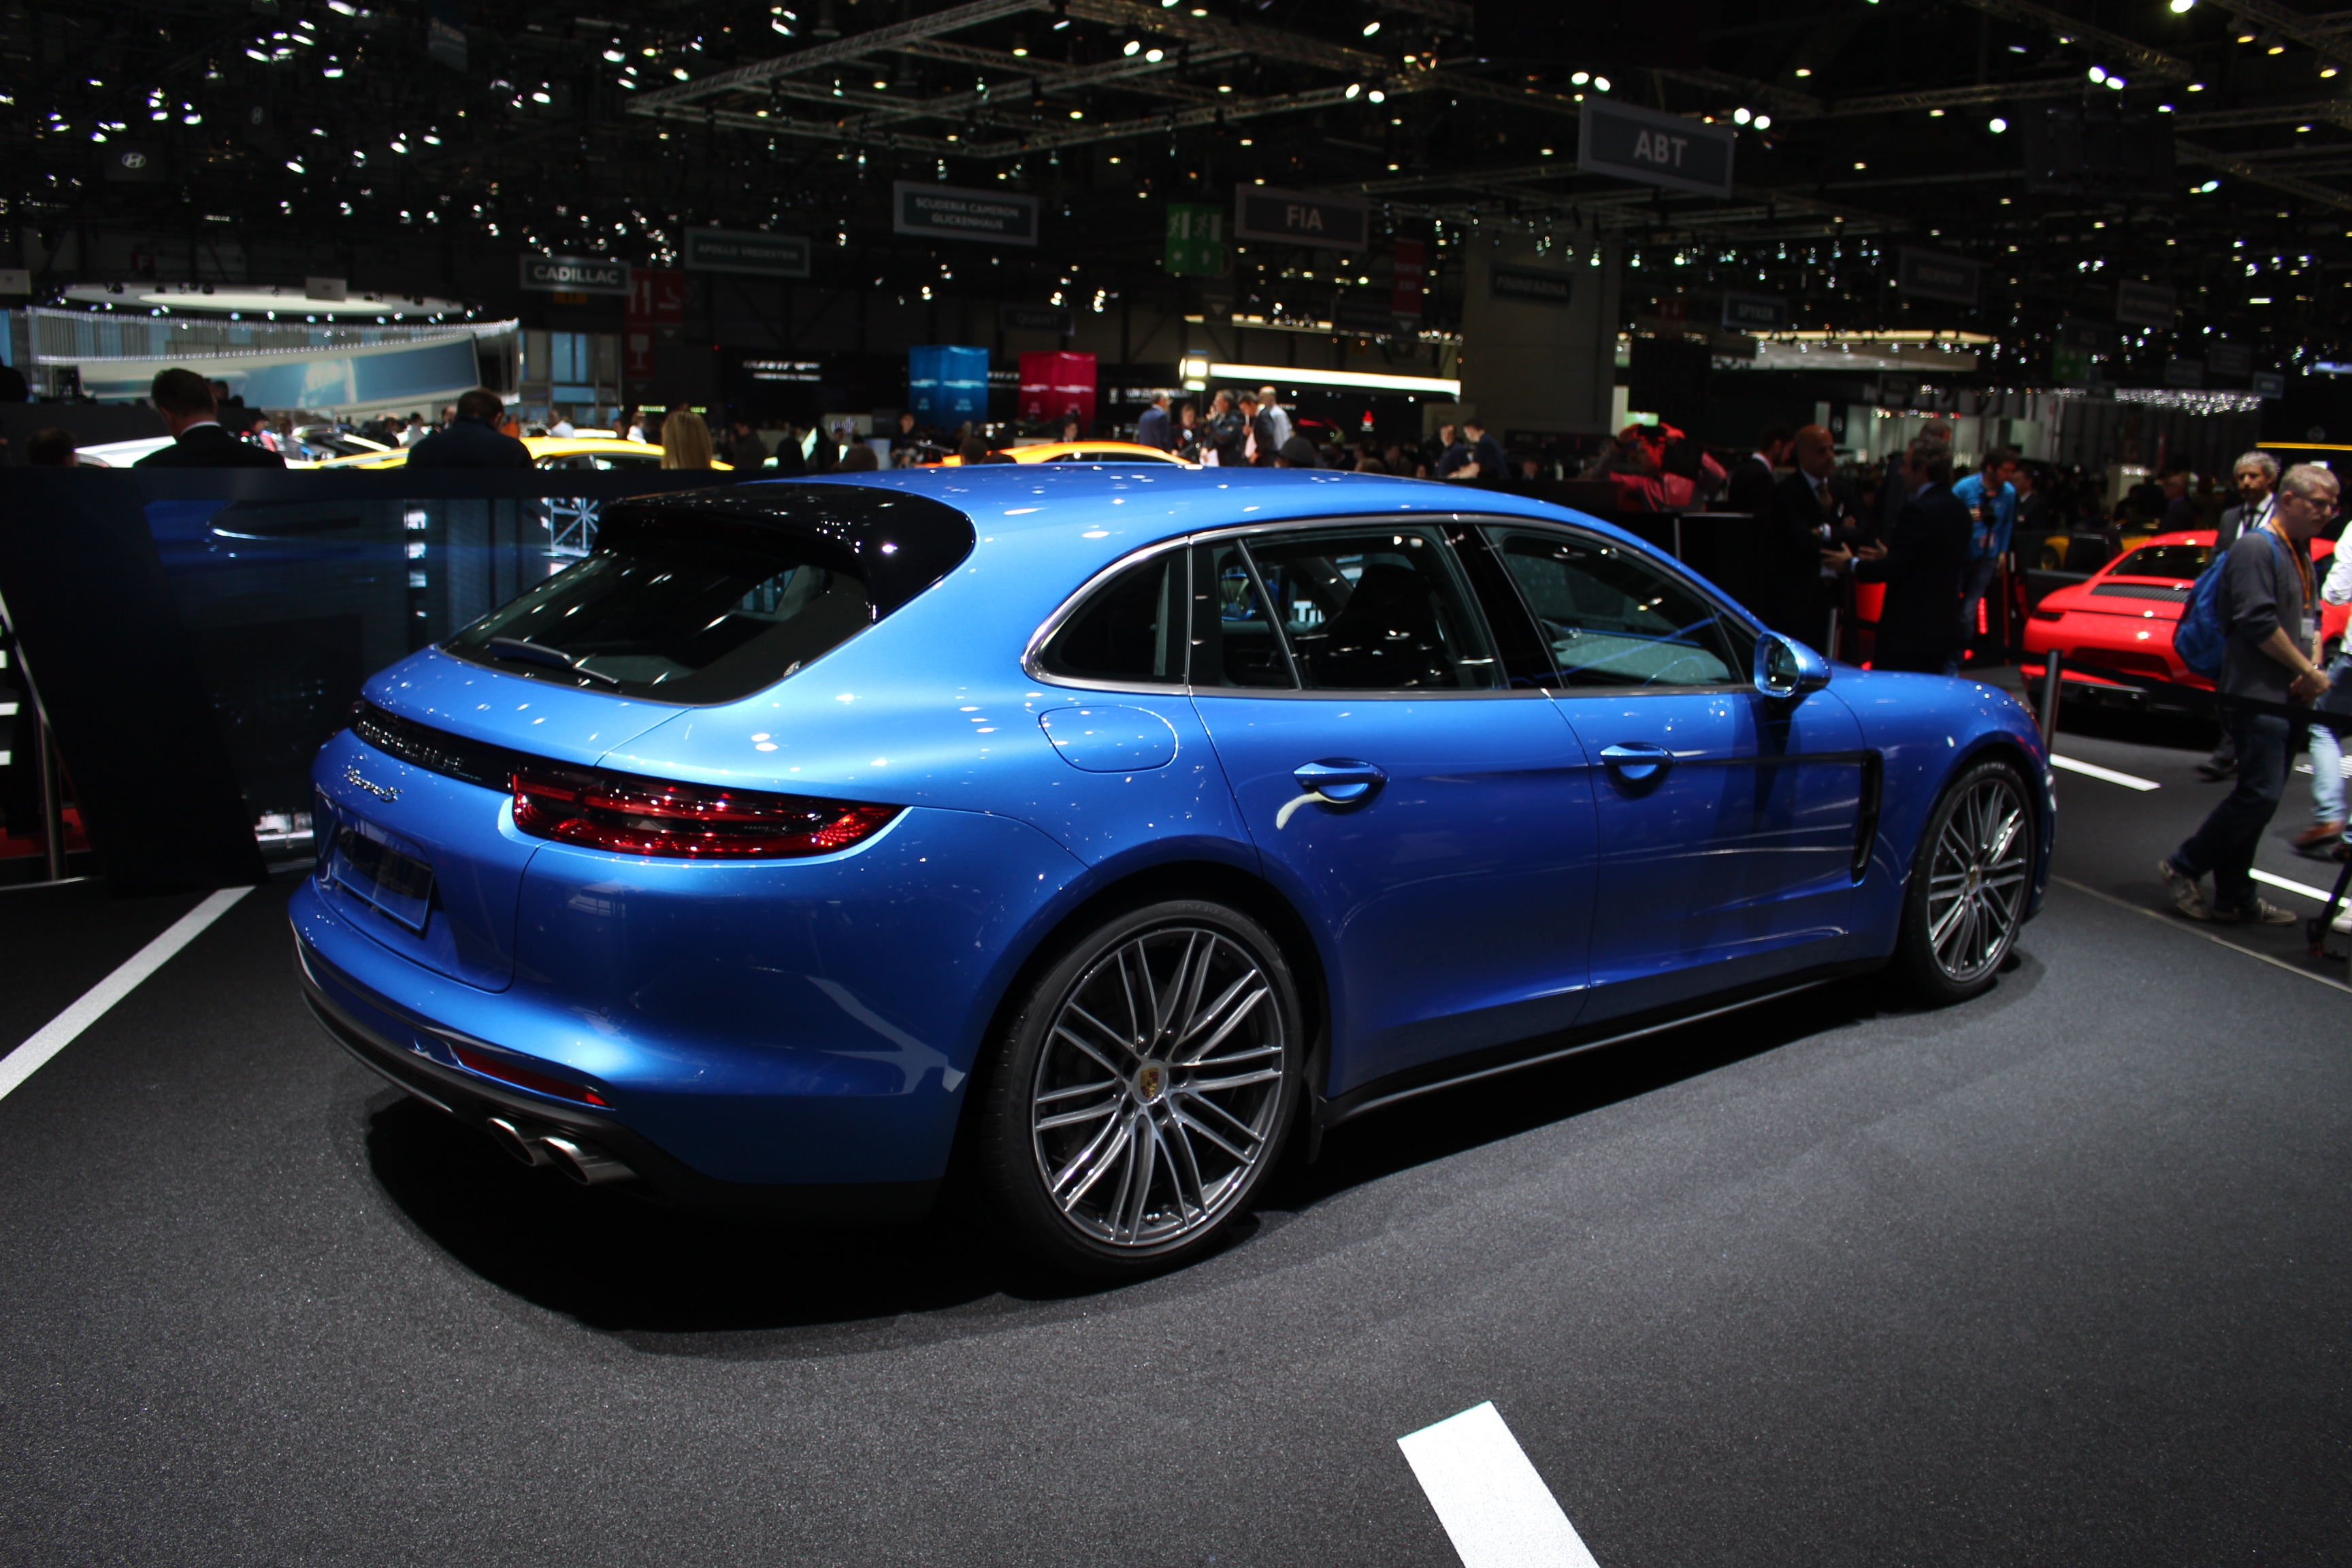 Porsche panamera sport turismo 5 places en direct du for Salon des vignerons paris 2017